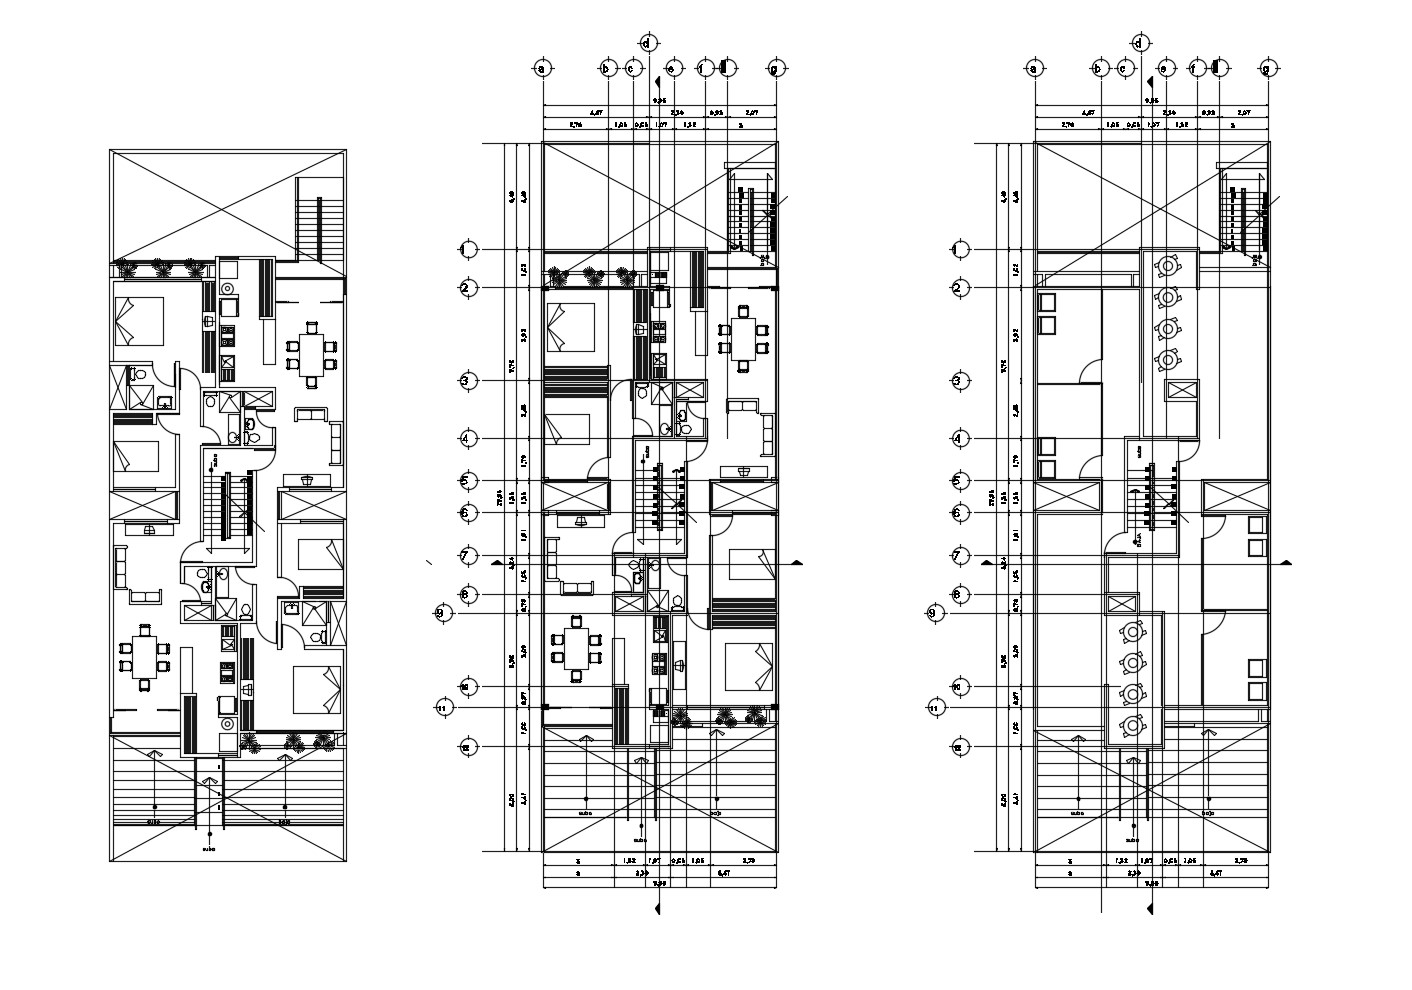 Apartment design with furniture details in dwg file